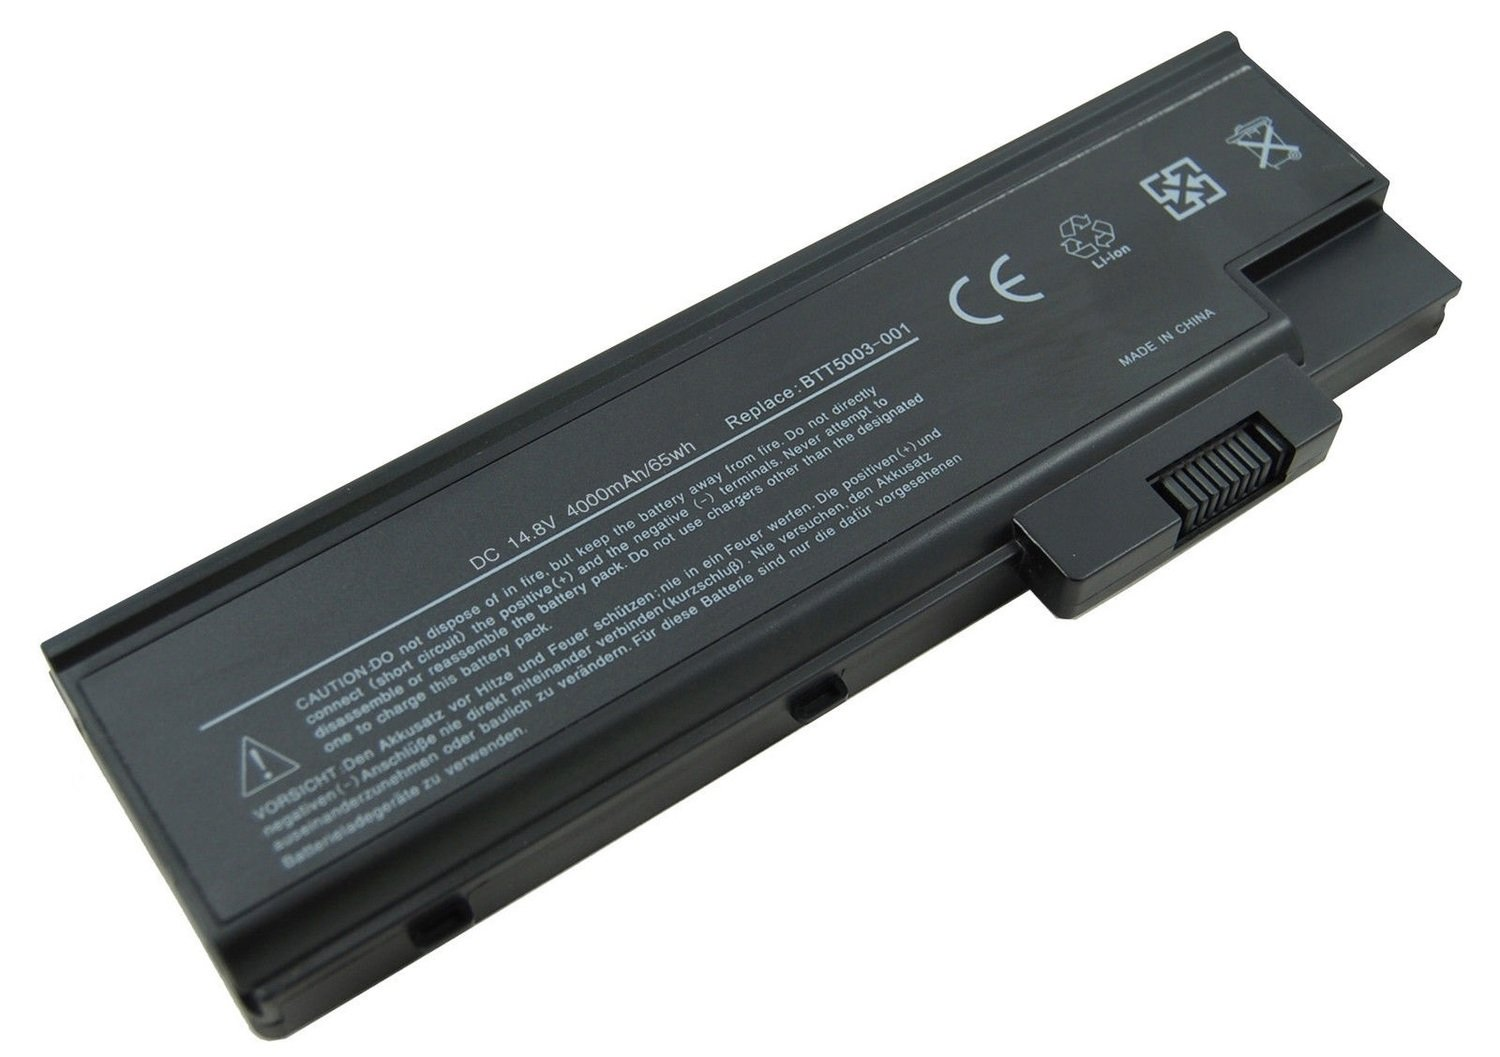 Acer Aspire 1410 1640 1680 1690 3000 3500 5000 acer extensa 2300 3000 4000 acer travelmate 2300 4000 4100 4500 4600 series compatible laptop battery